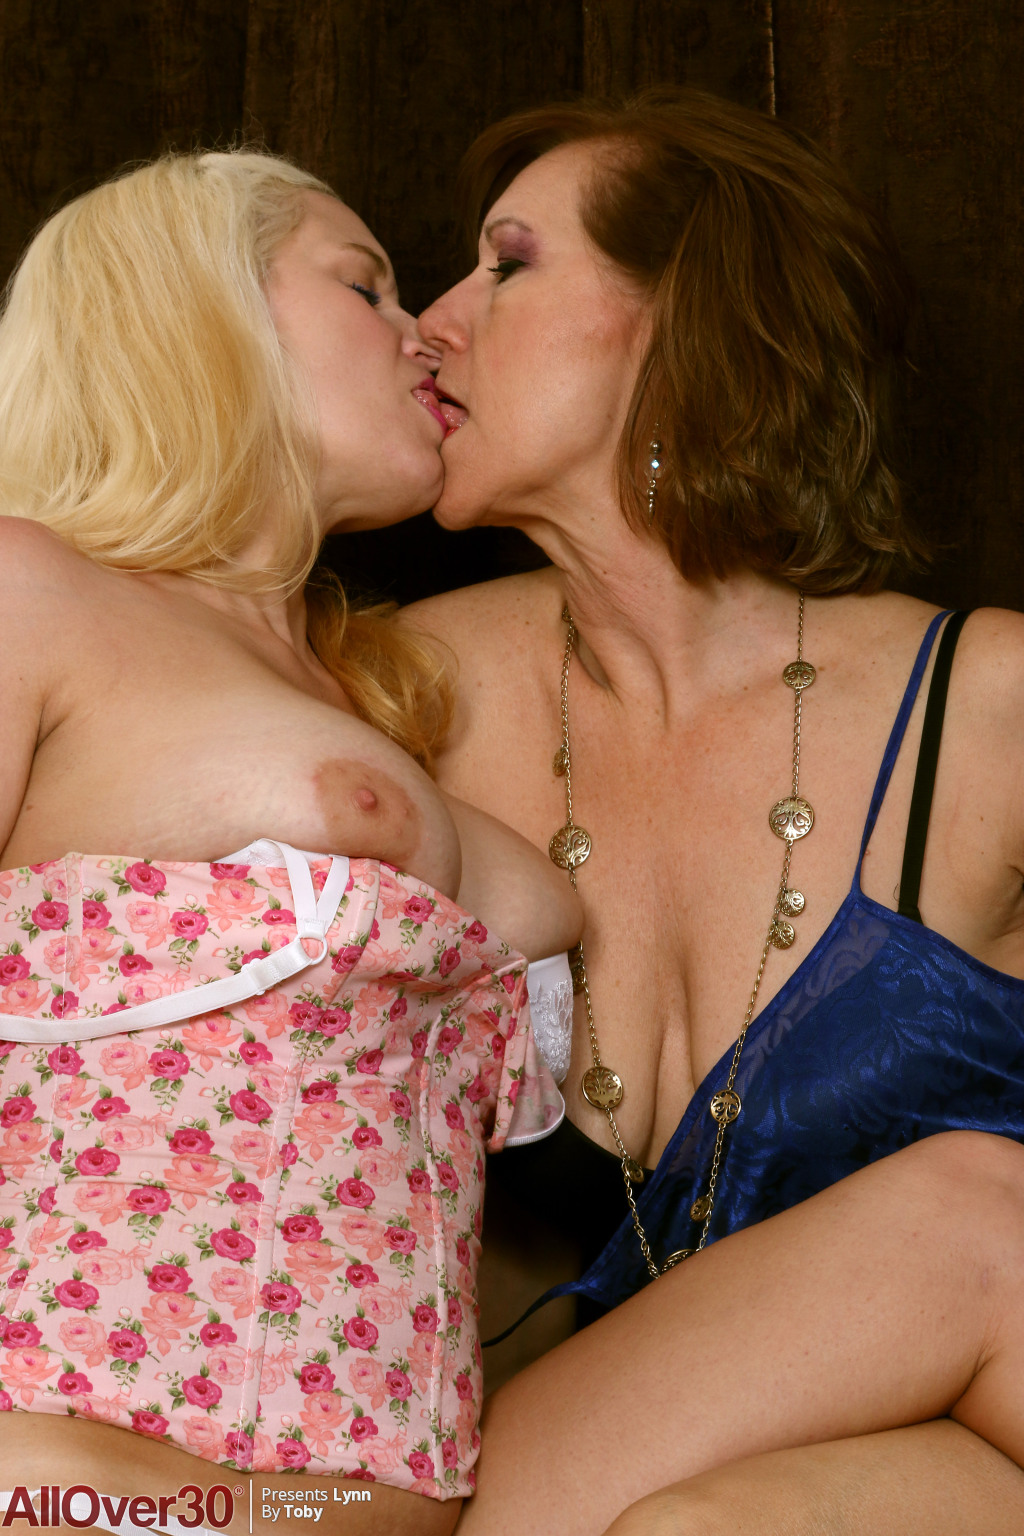 lynn-and-april-key-lesbian-lust-04